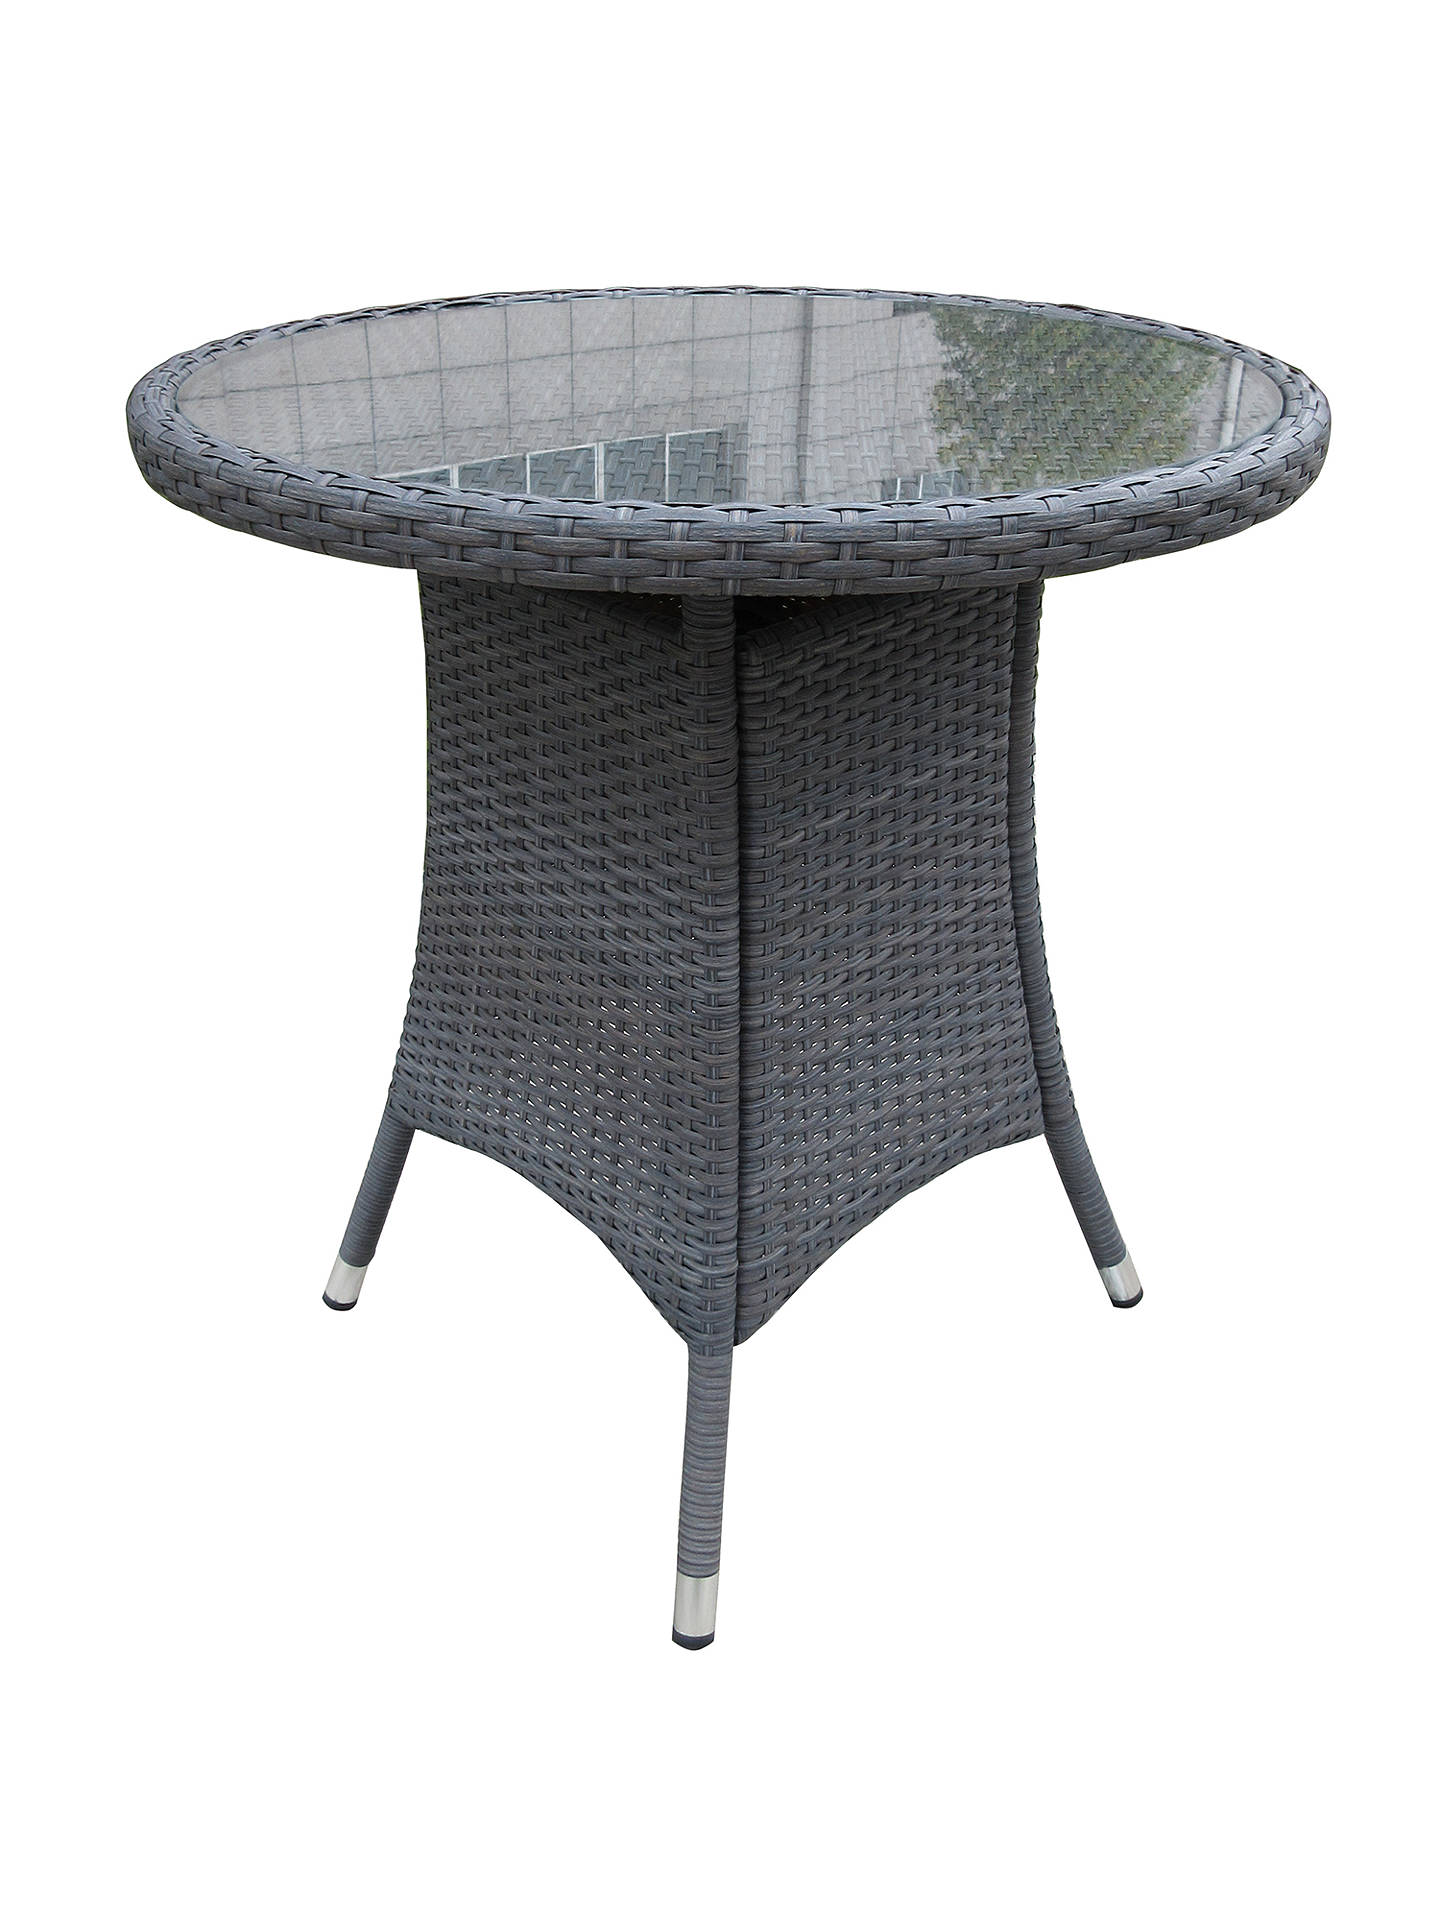 BuyJohn Lewis & Partners Malaga 2-Seater Bistro Table, Grey Online at johnlewis.com